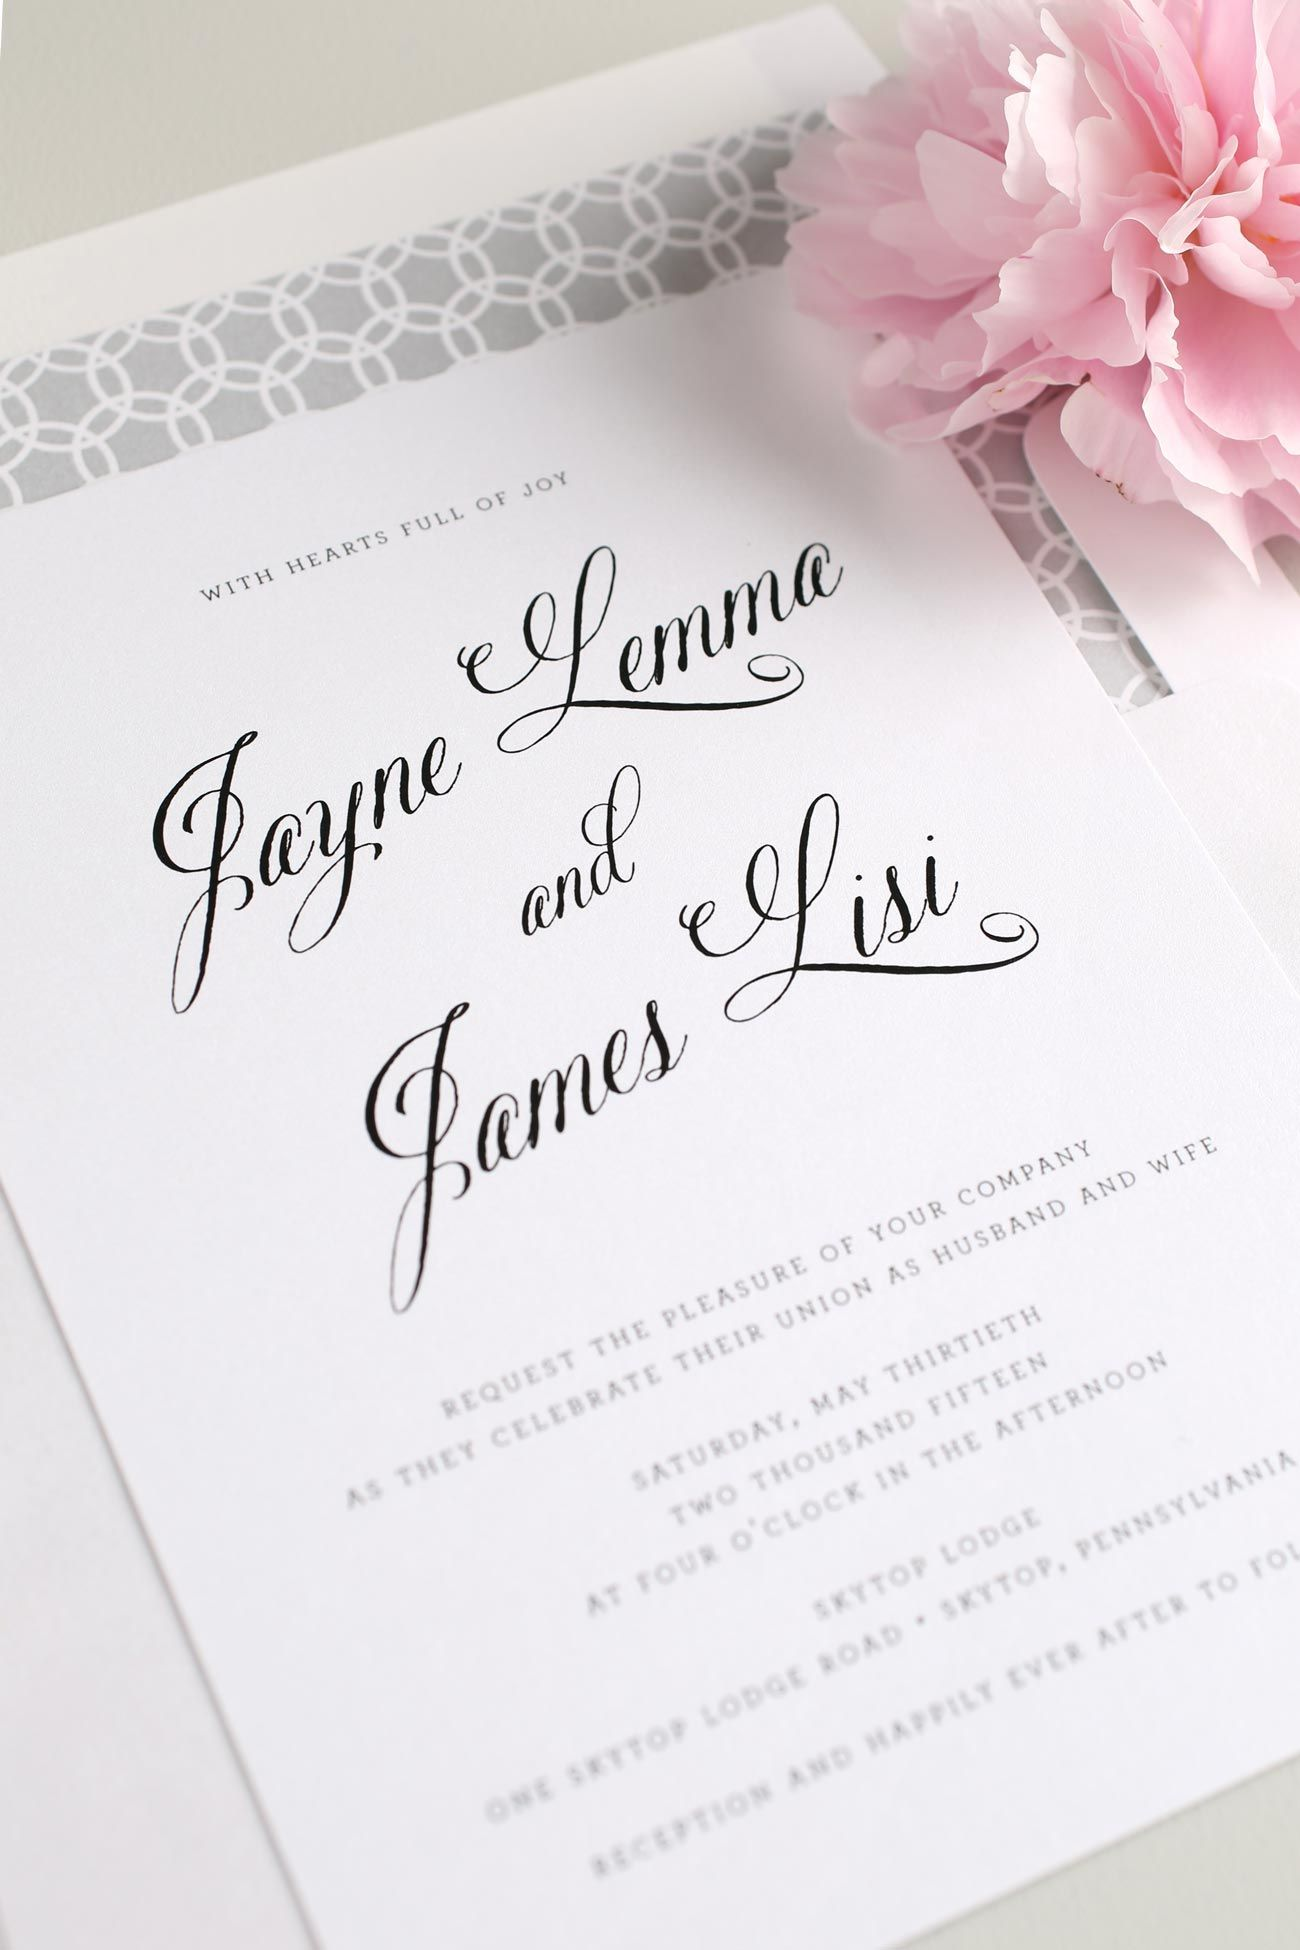 Rustic And Modern Calligraphy Wedding Invitations In Blush Pink Pewter Gray With A Circle Pattern Envelope Liner